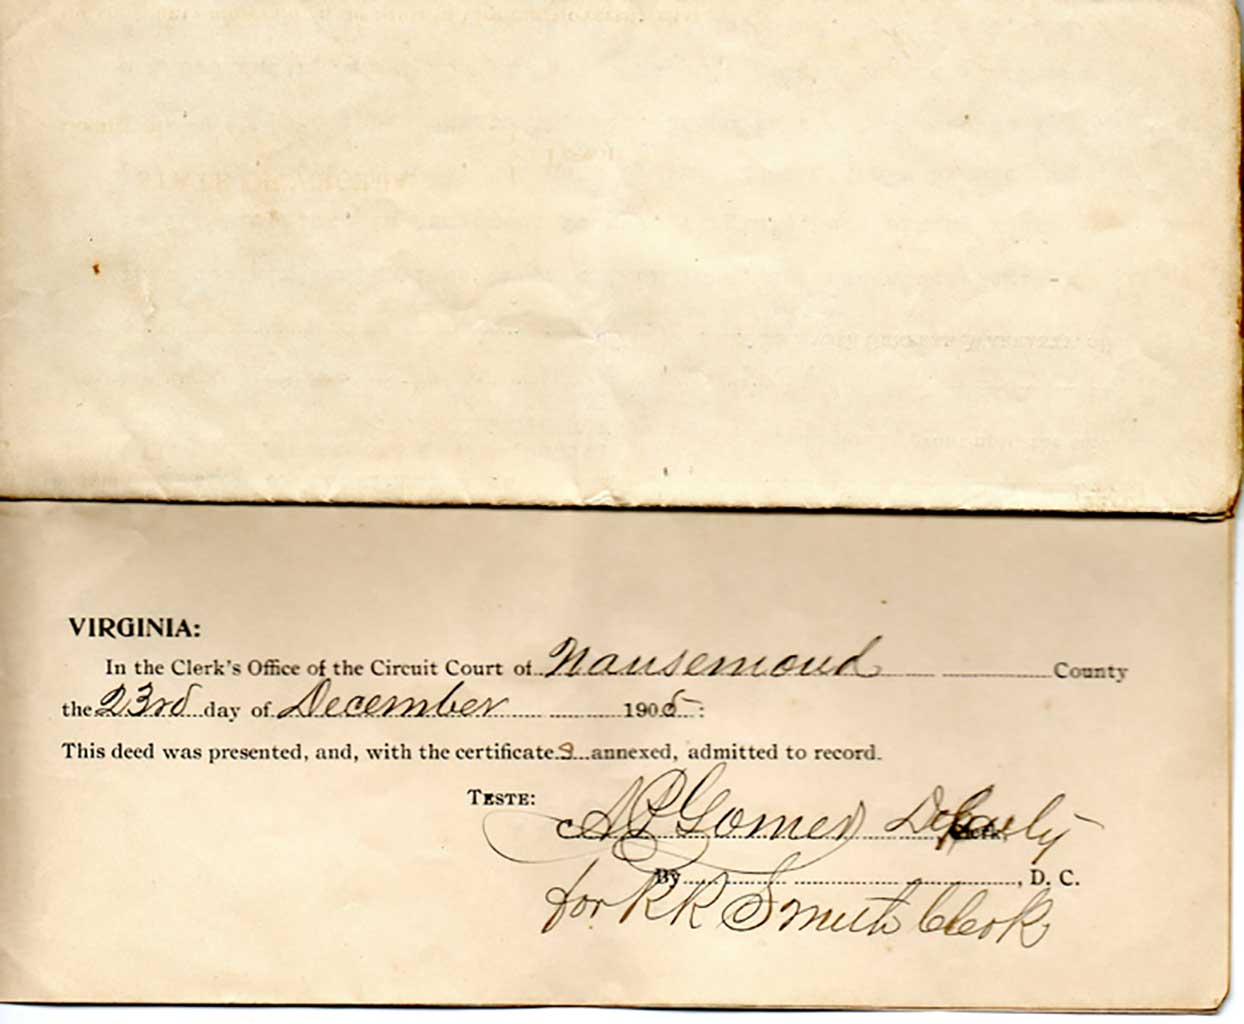 continuation-of-page-2-of-1905-deed-img014